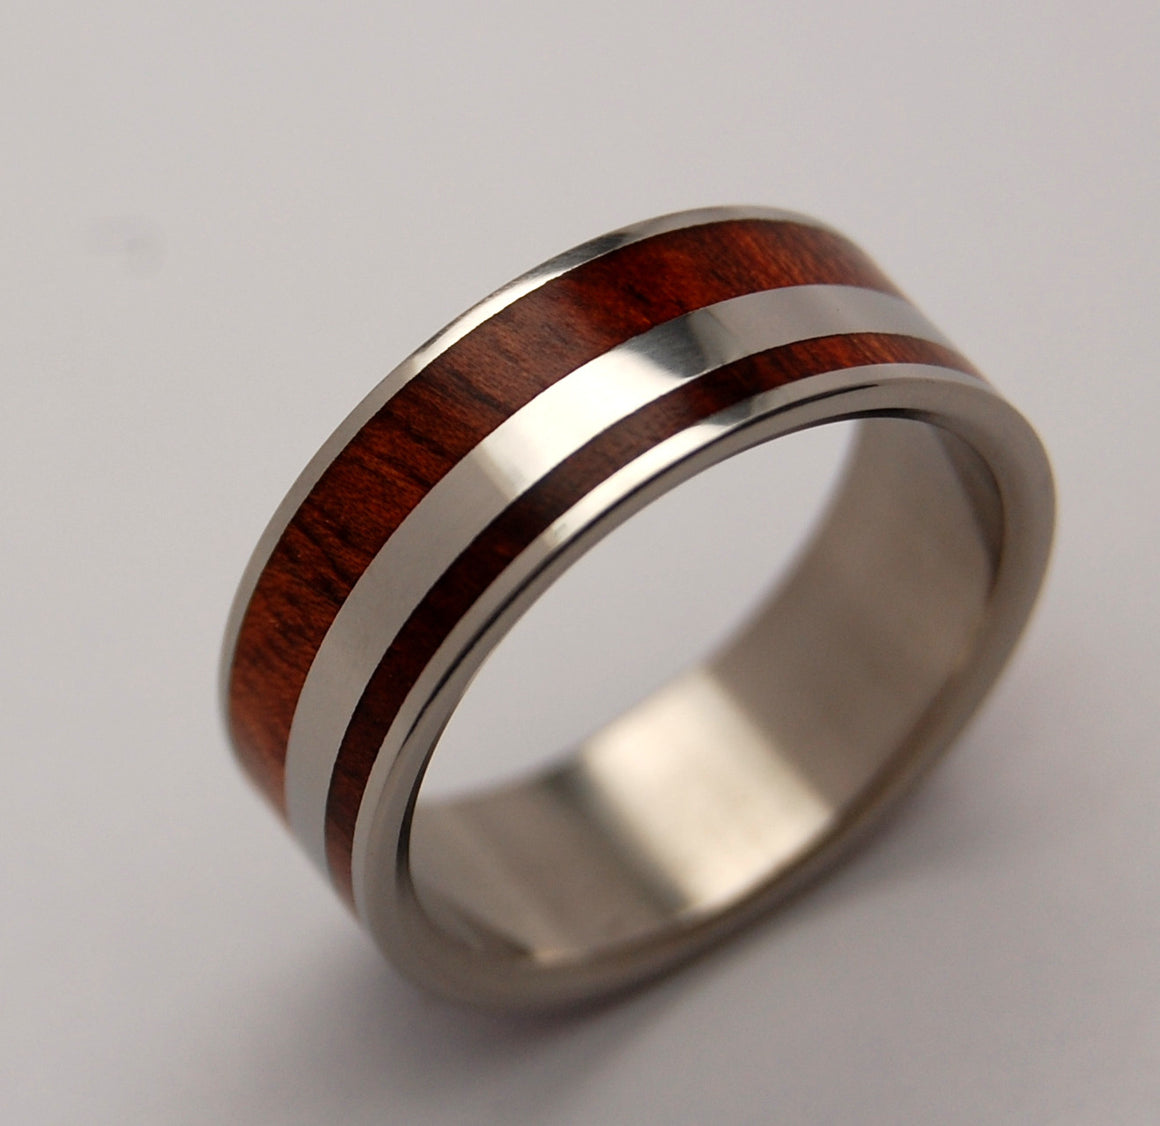 Mens Wedding Rings - Custom Mens Rings - Wood Rings | MORNING OF CREATION